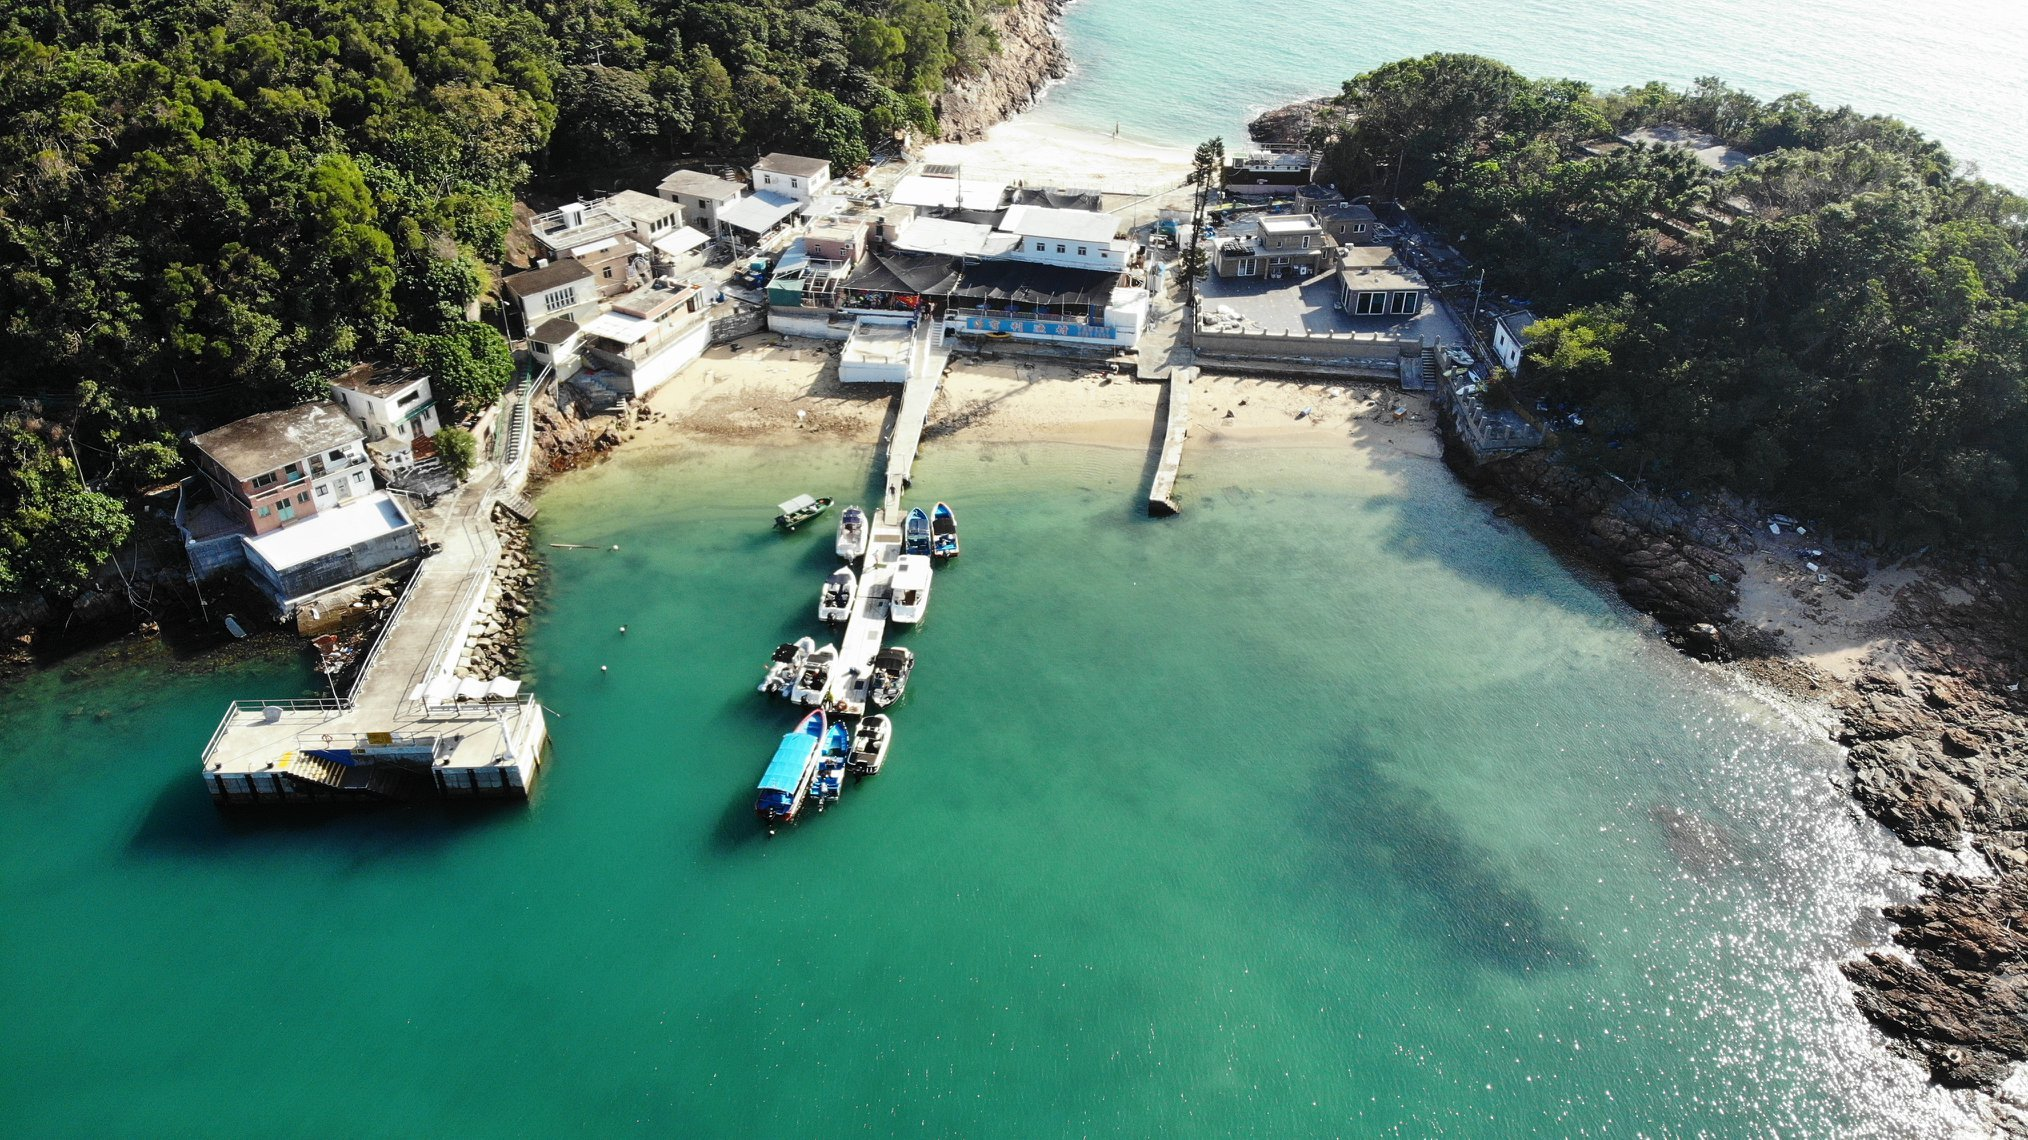 Secluded dining spots in Hong Kong worth visiting this long weekend